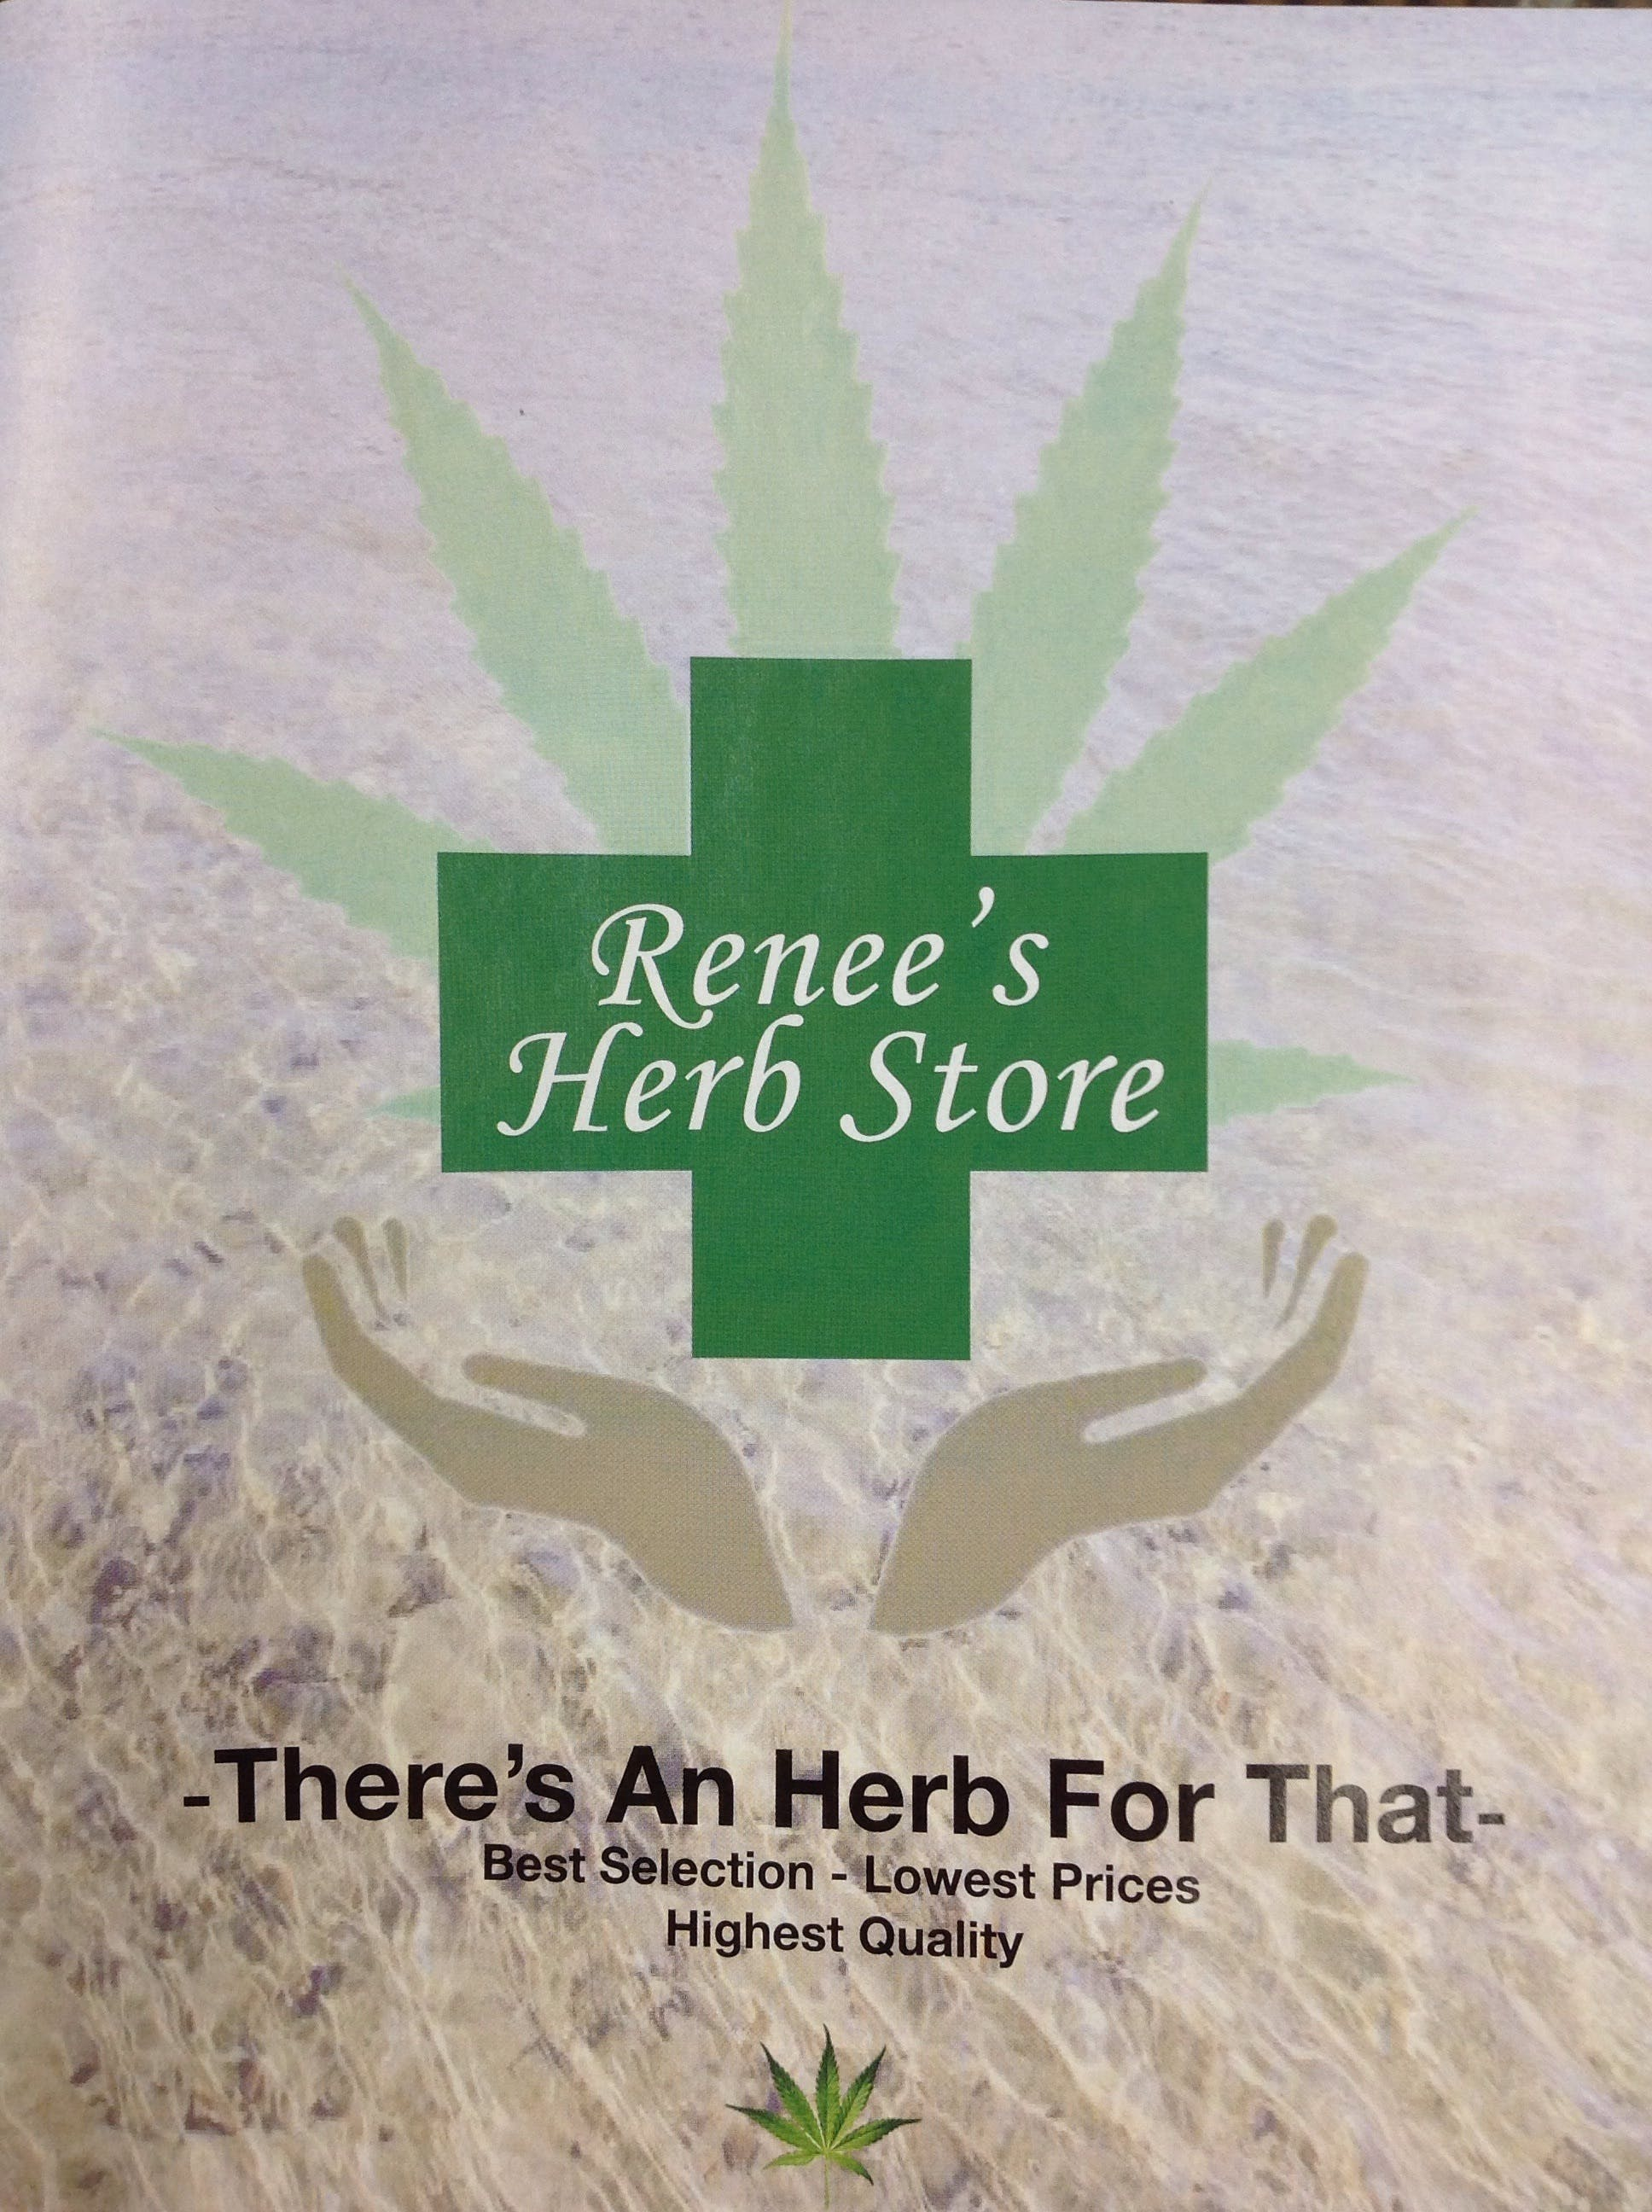 Renee's Herb Store - Medical Marijuana Doctors - Cannabizme.com